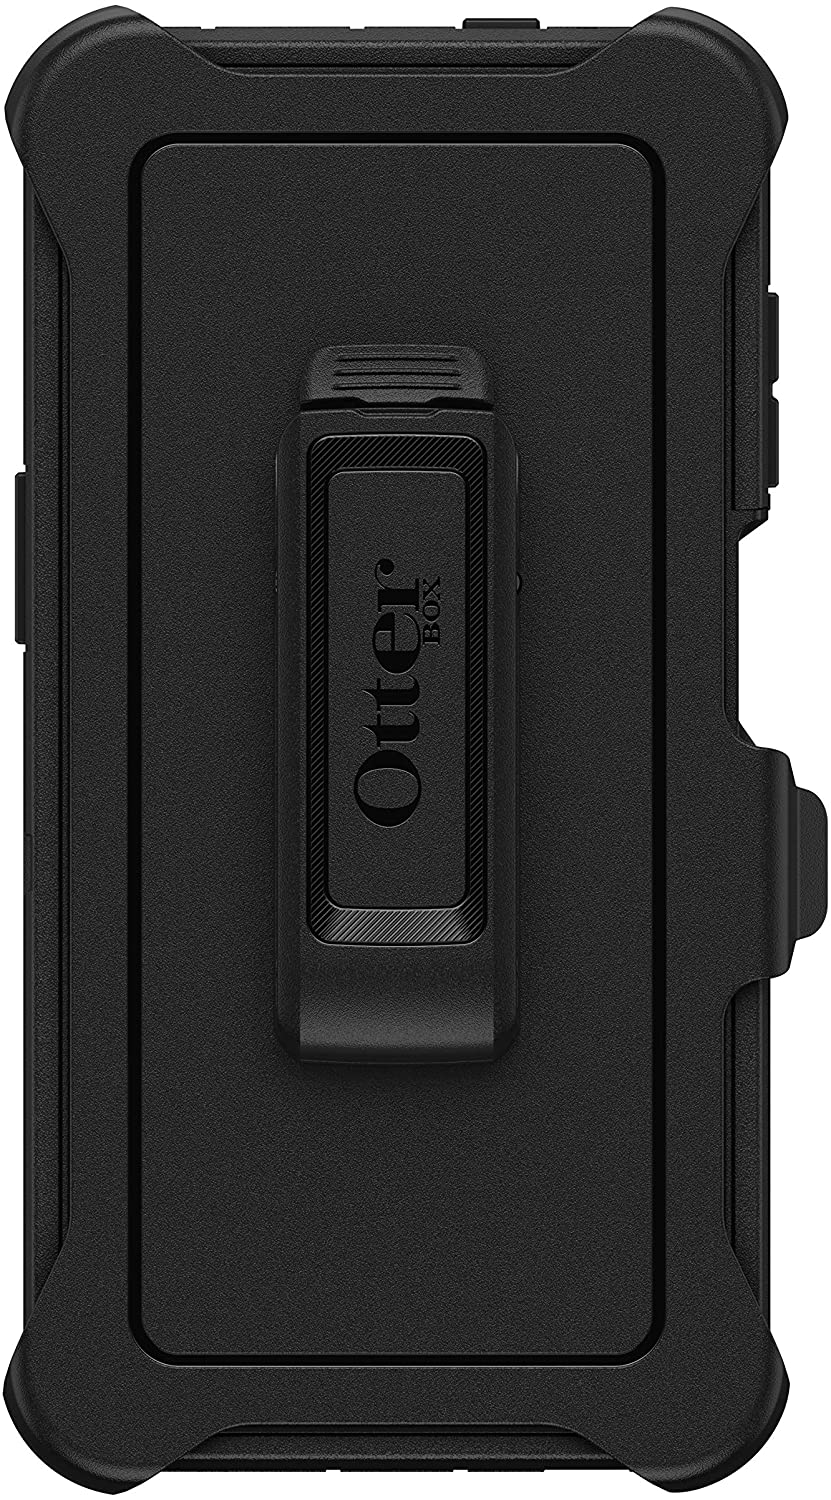 OtterBox DEFENDER SERIES SCREENLESS EDITION Case for Galaxy XCover Pro - Bulk Single-pack (1 unit) - BLACK